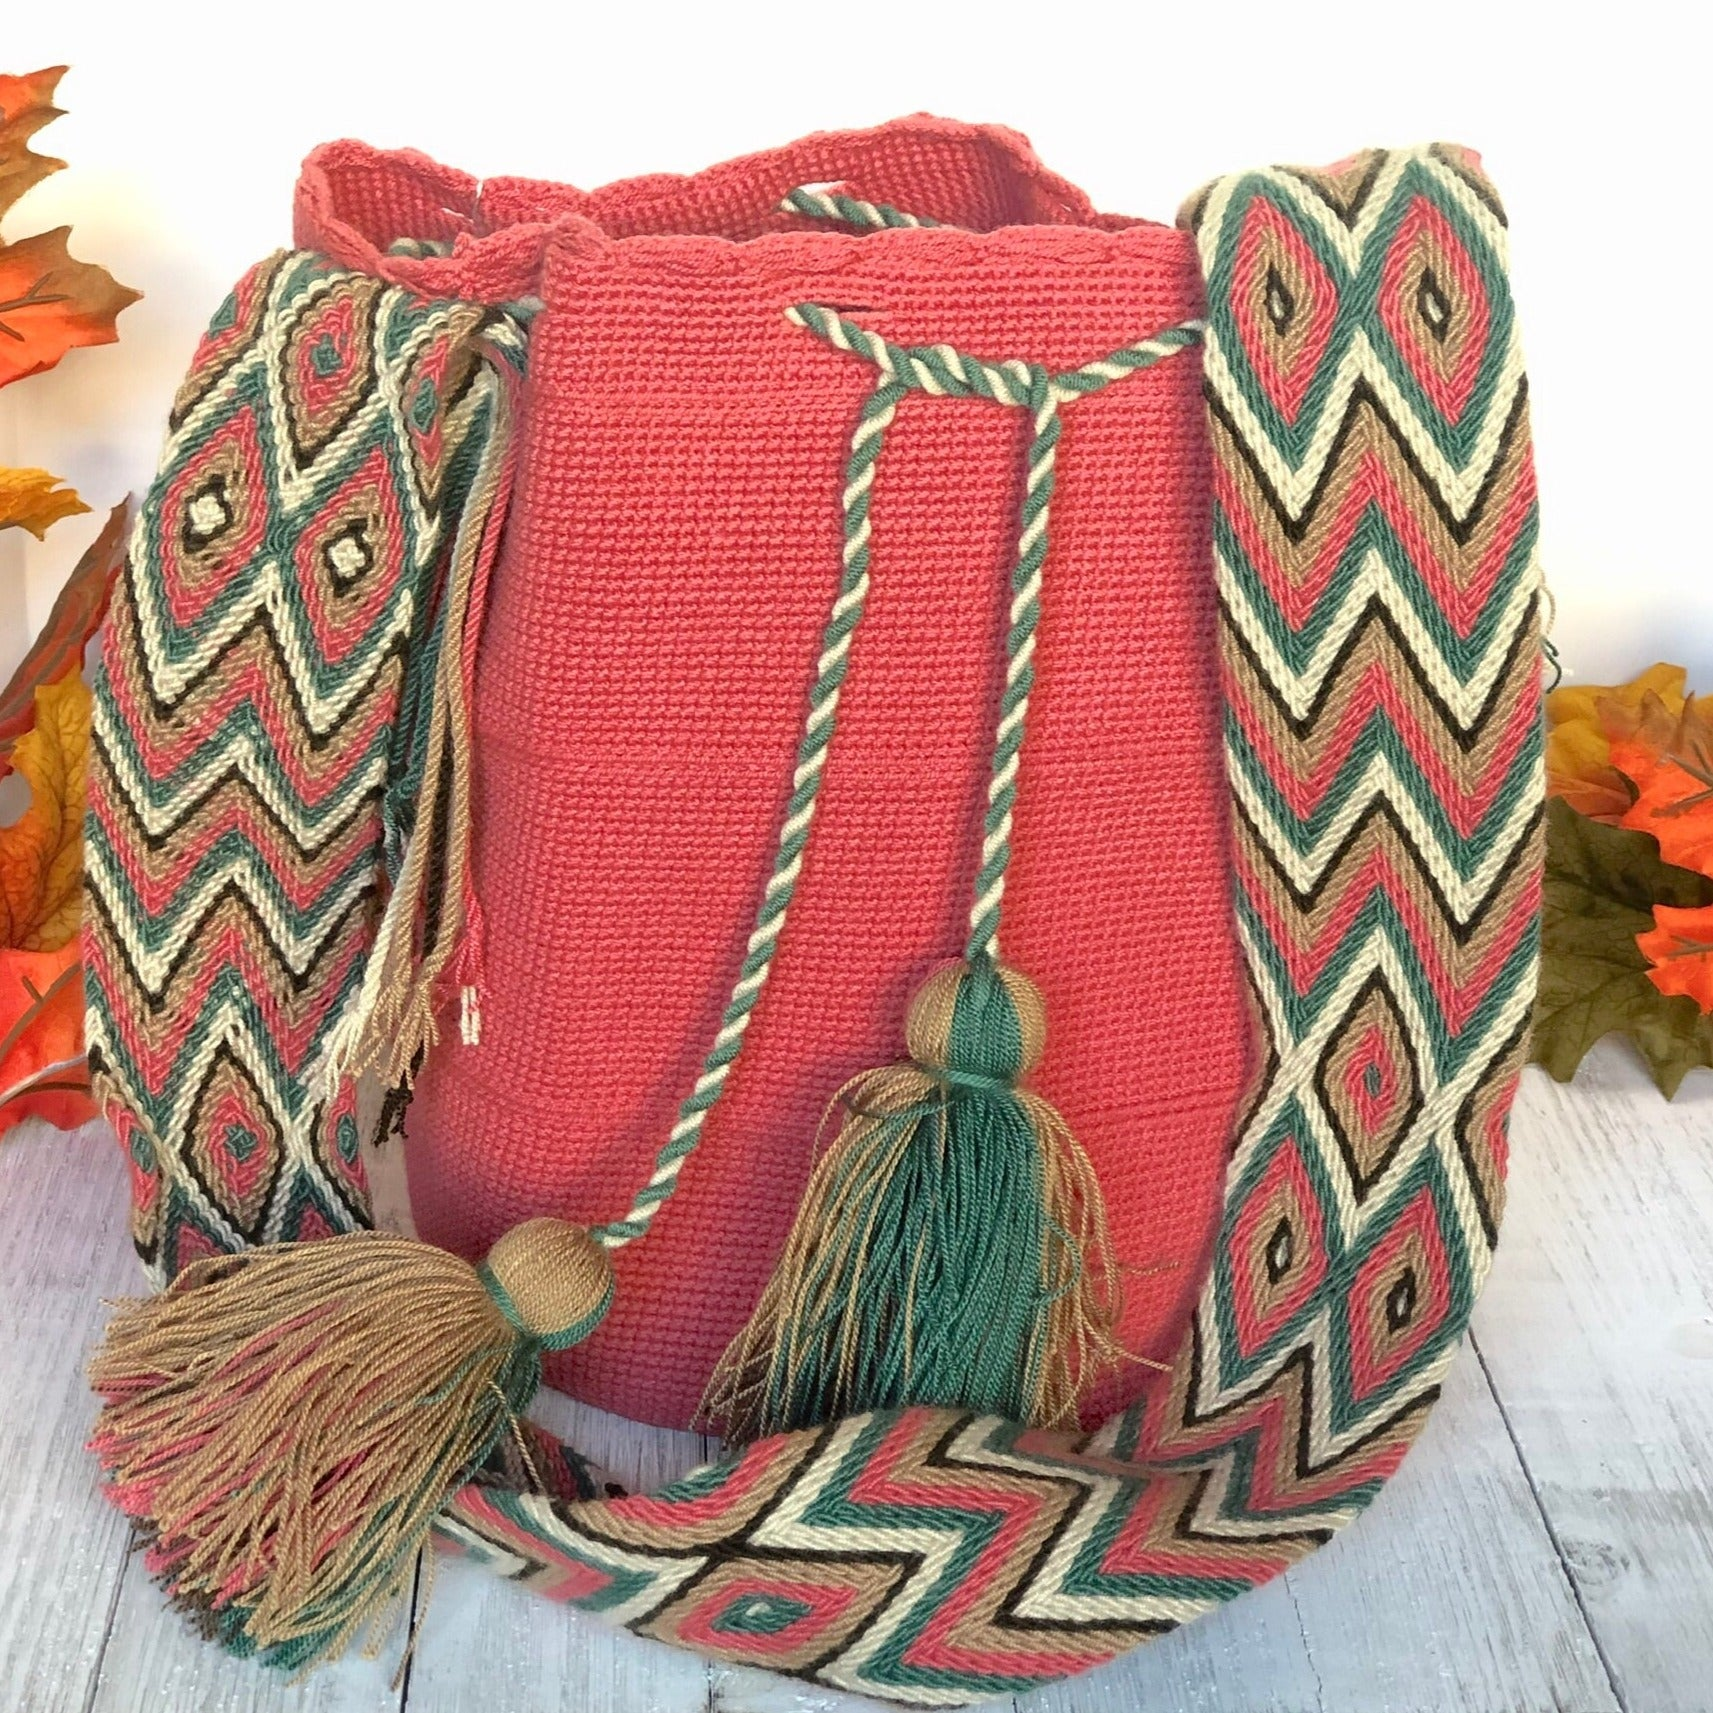 Rose Crochet Bag | Crossbody Boho Bags | Wayuu Bags